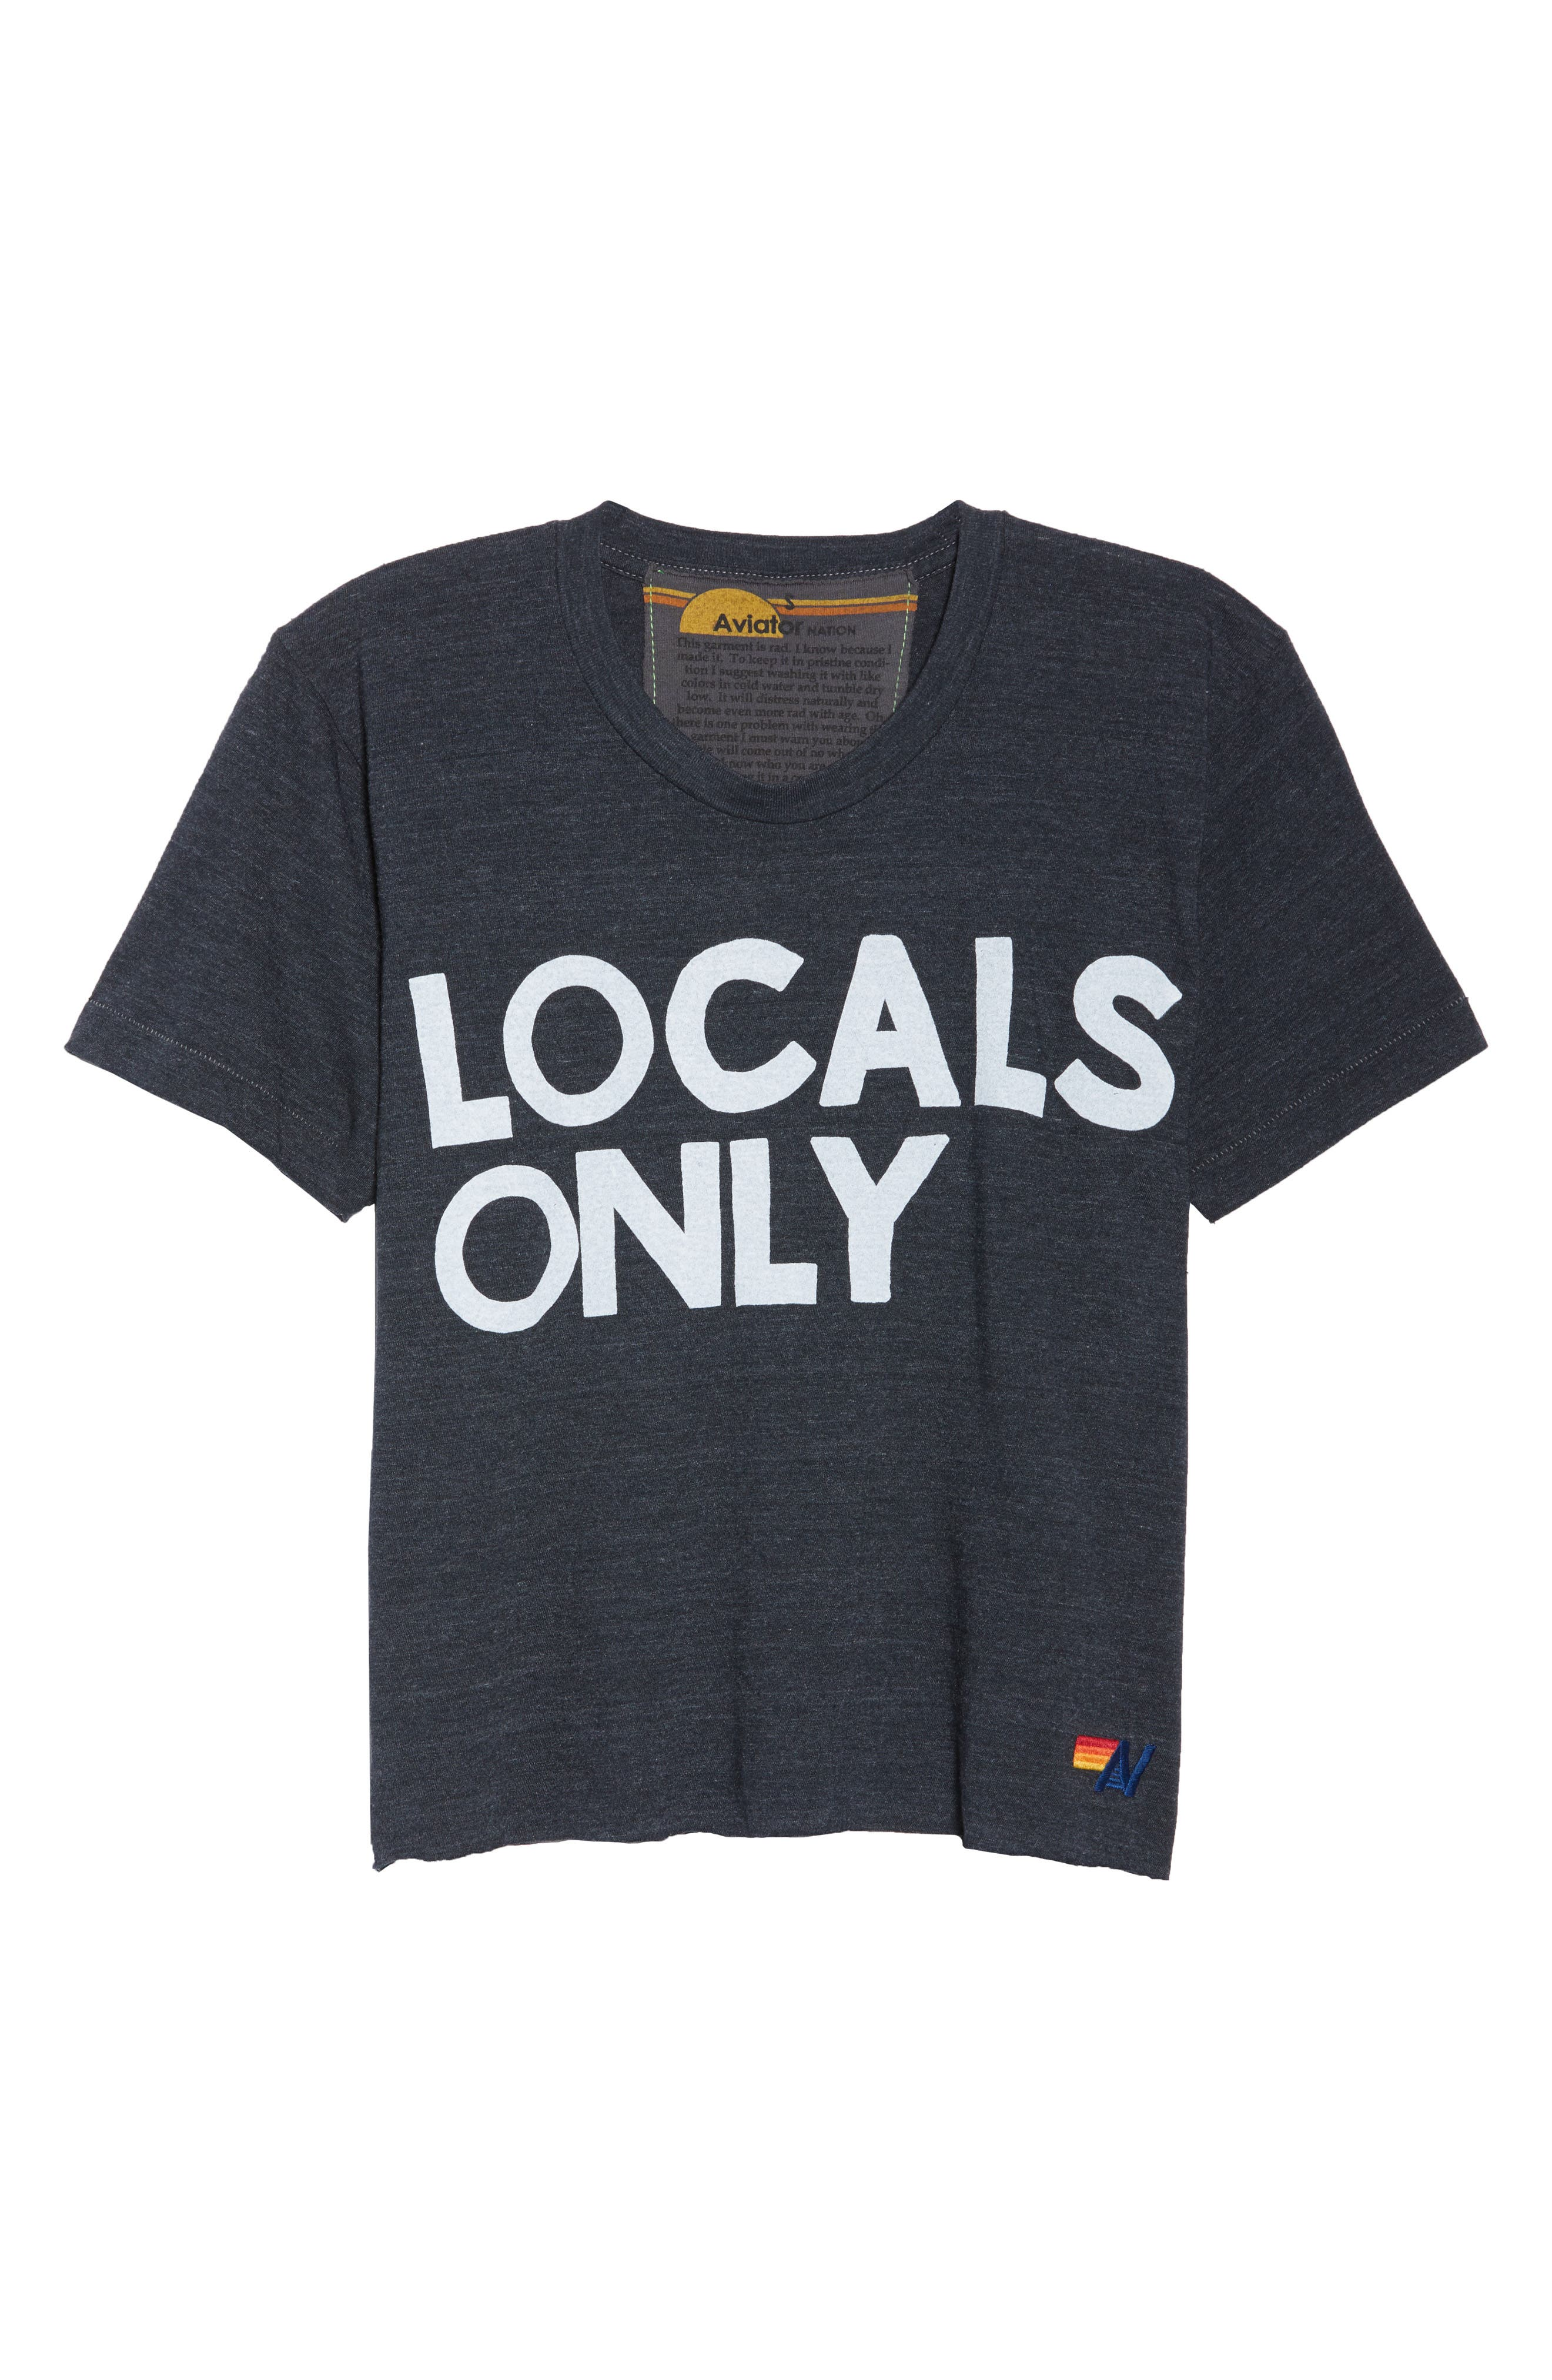 Locals Only Boyfriend Tee,                             Alternate thumbnail 7, color,                             Charcoal